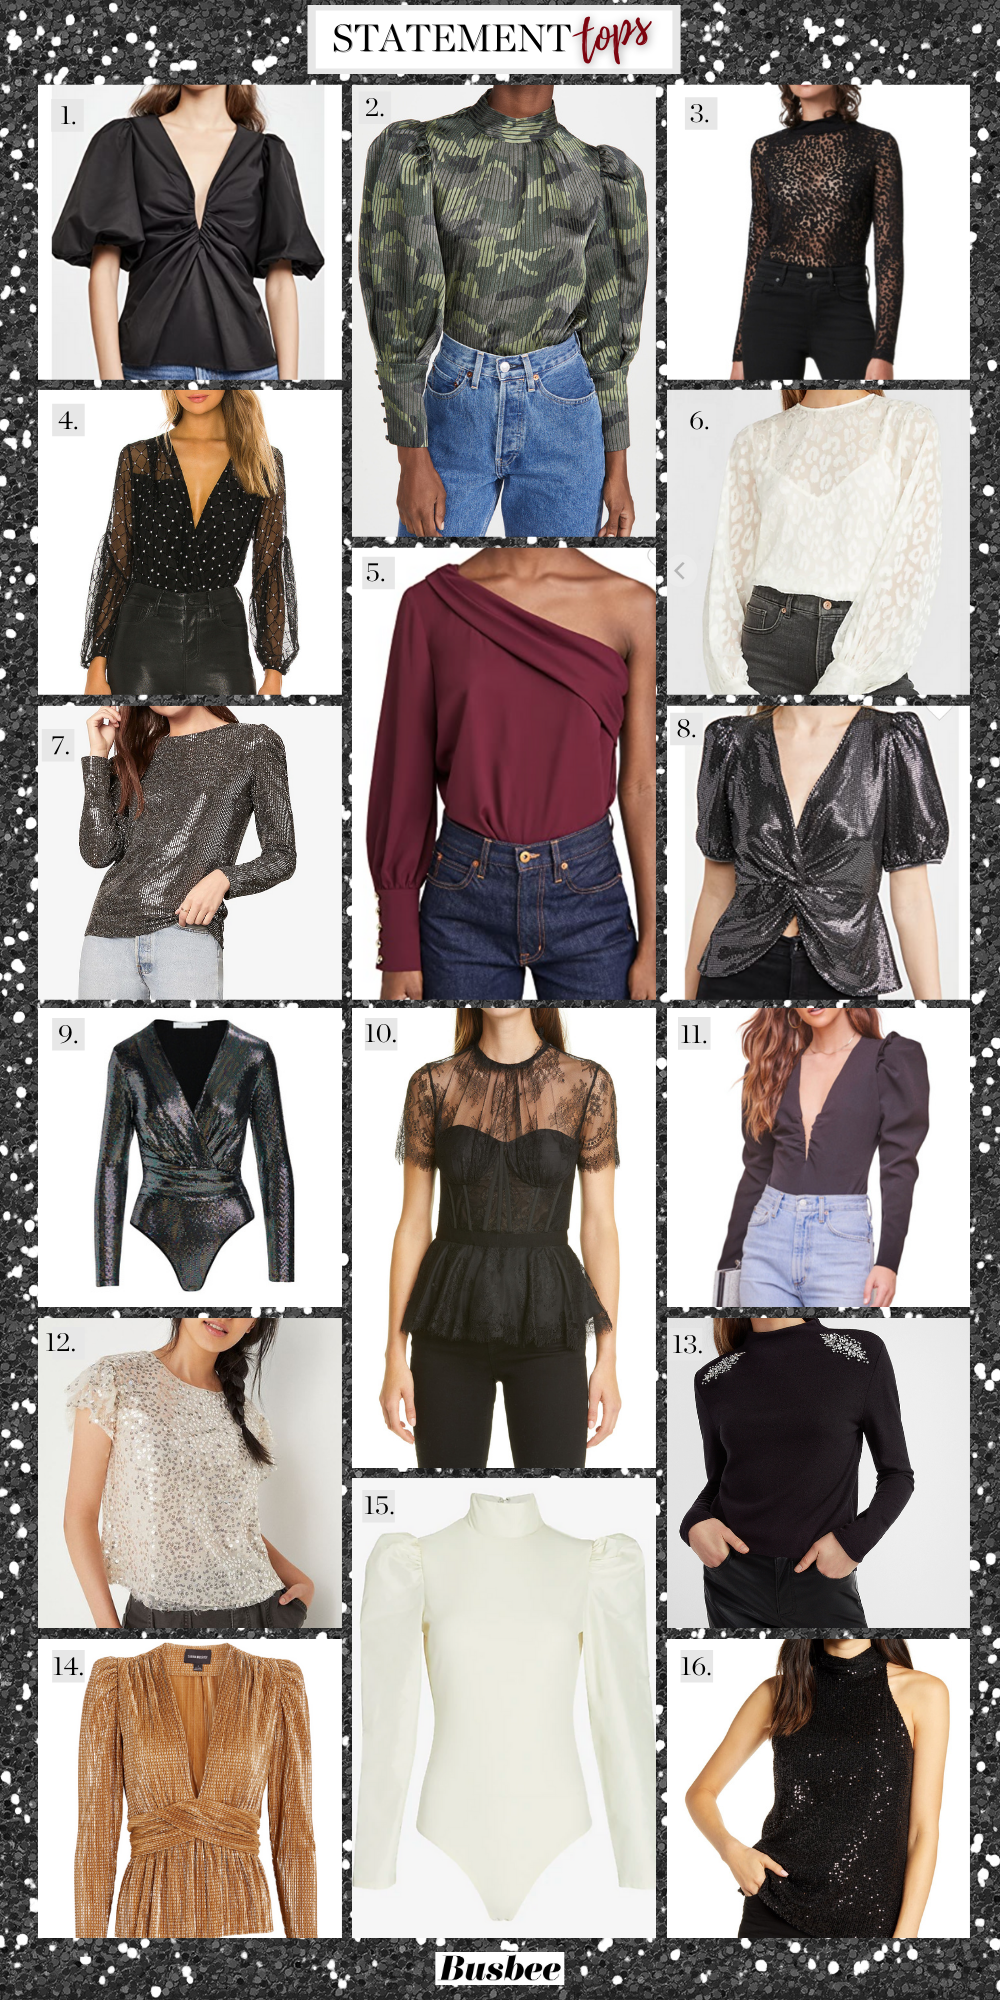 Statement Tops, Erin Busbee of Busbee Style sharing festive statement tops for the holidays including bodysuits and tops by Amanda Uprichard, Express, and more